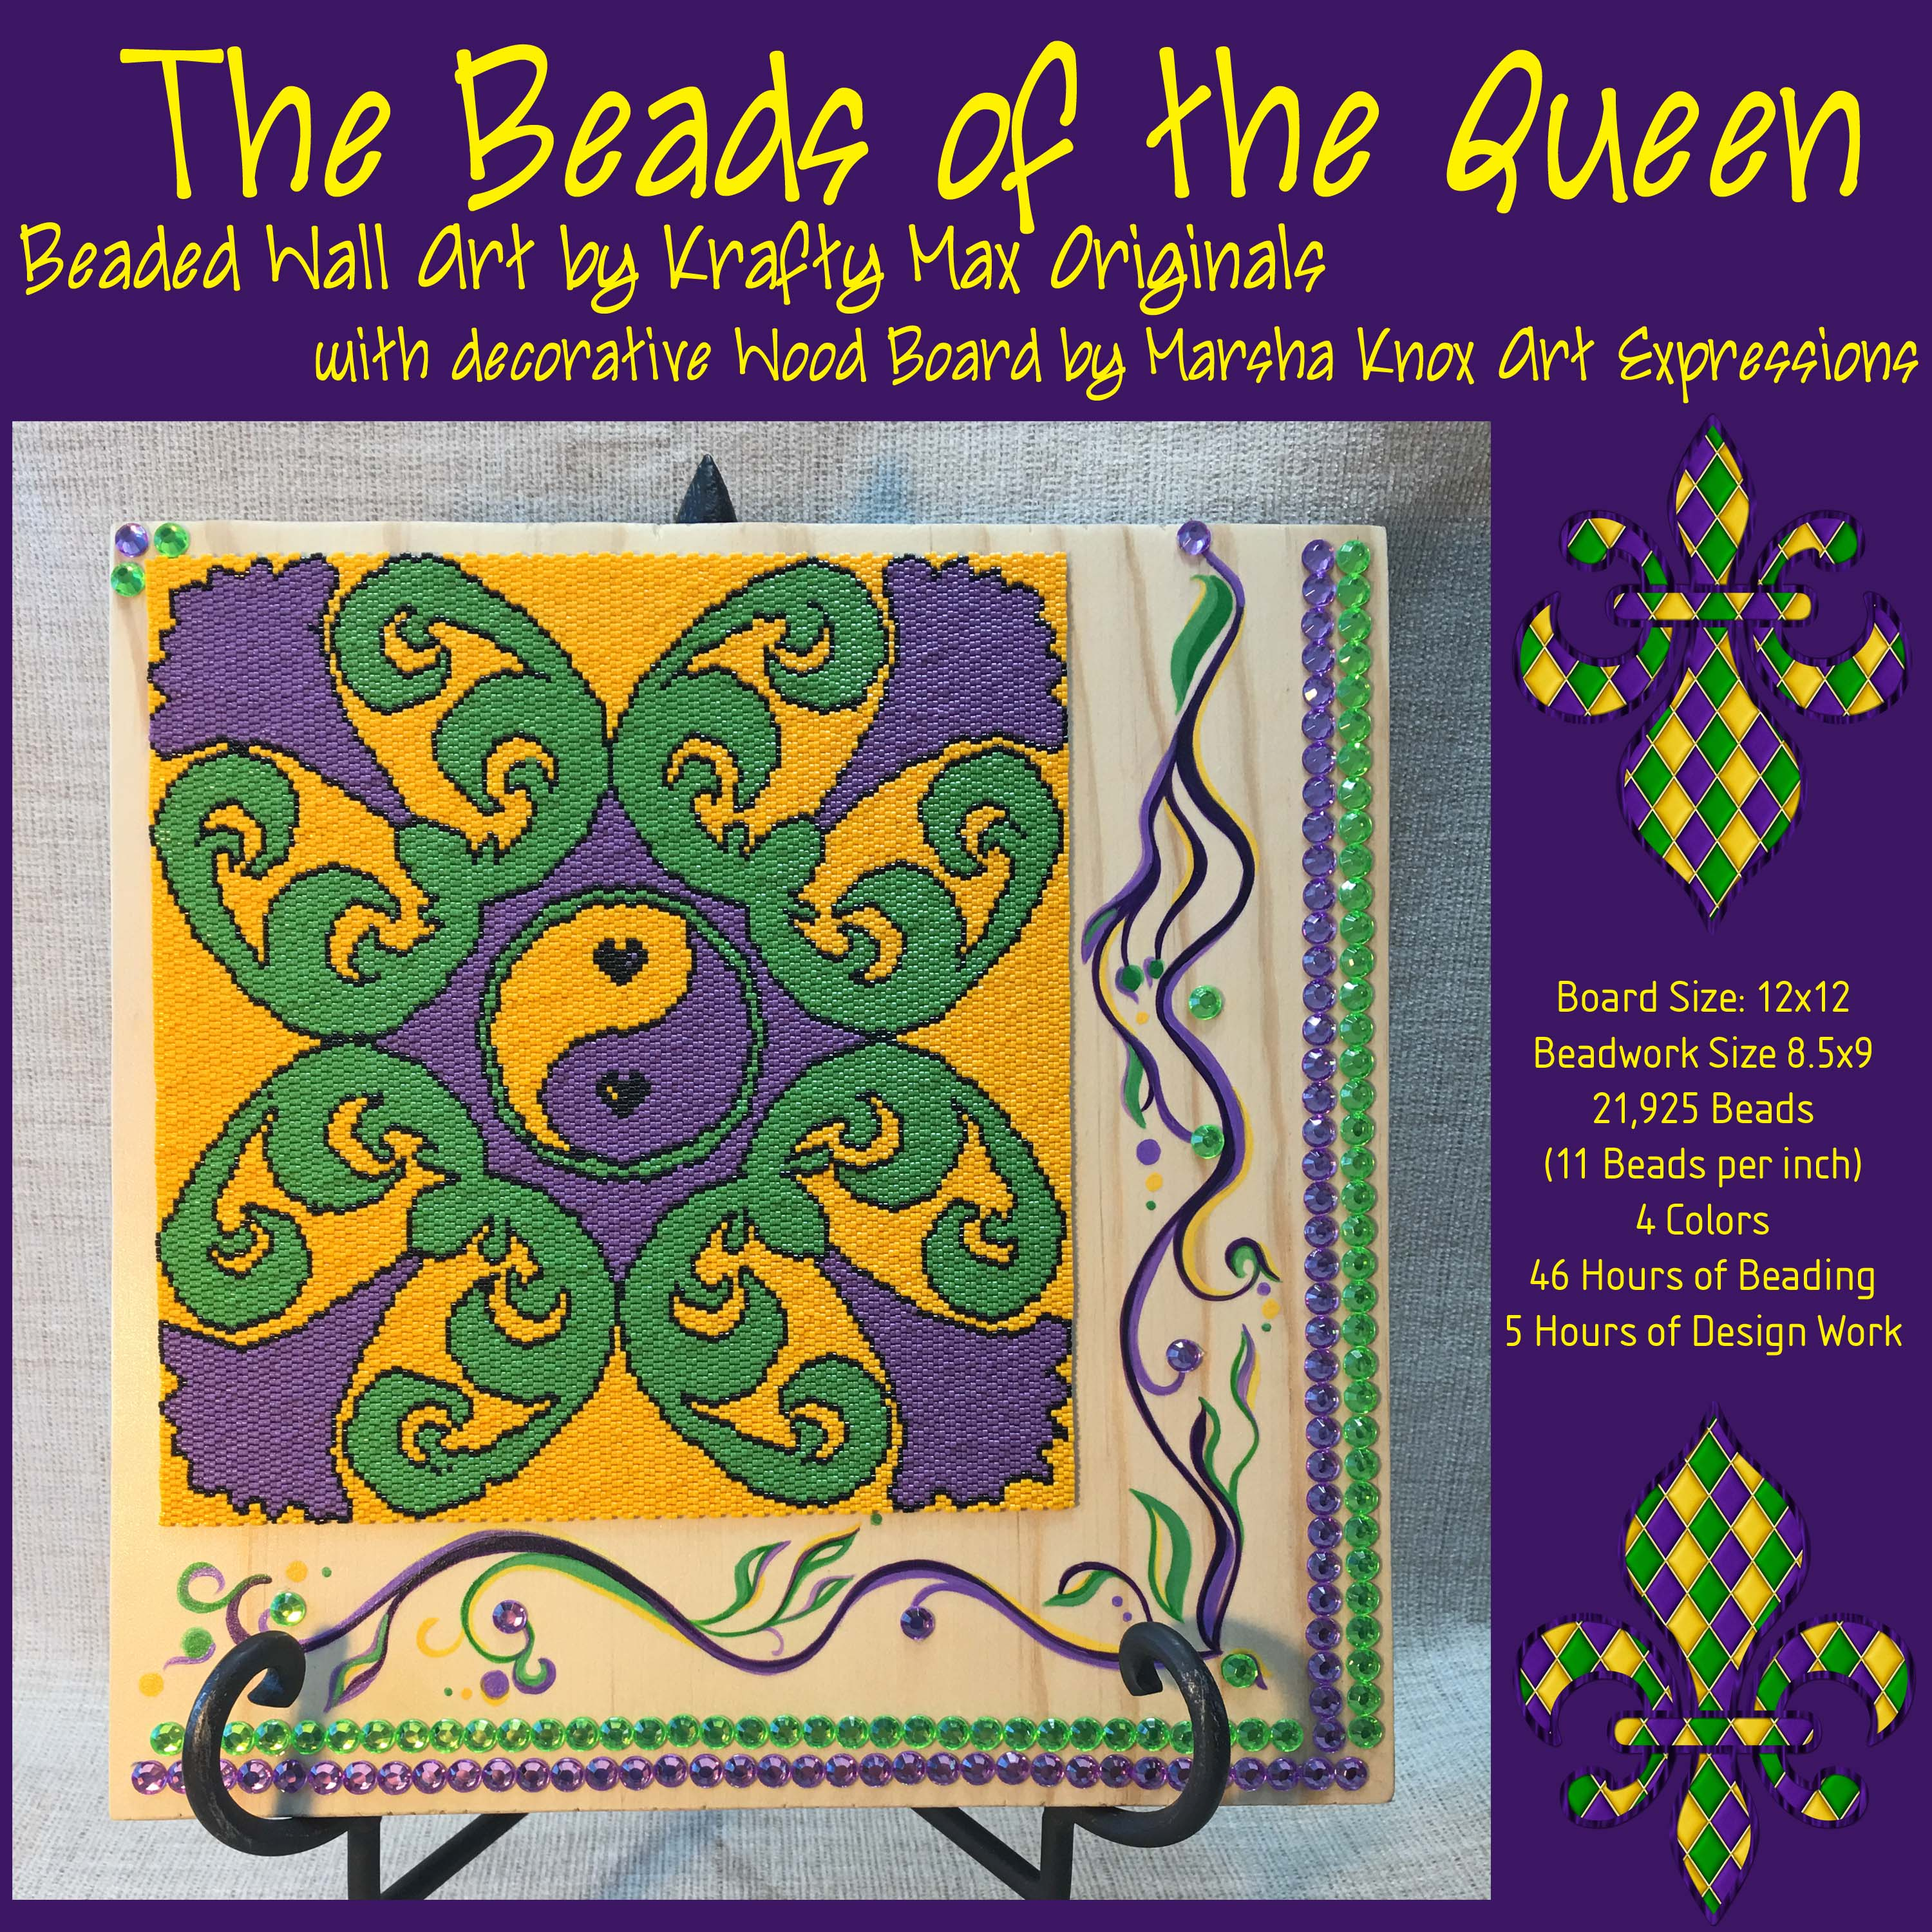 The Beads Of The Queen Beadwoven Wall Art With Hand Painted Wood By Marsha Knox Art Expressions